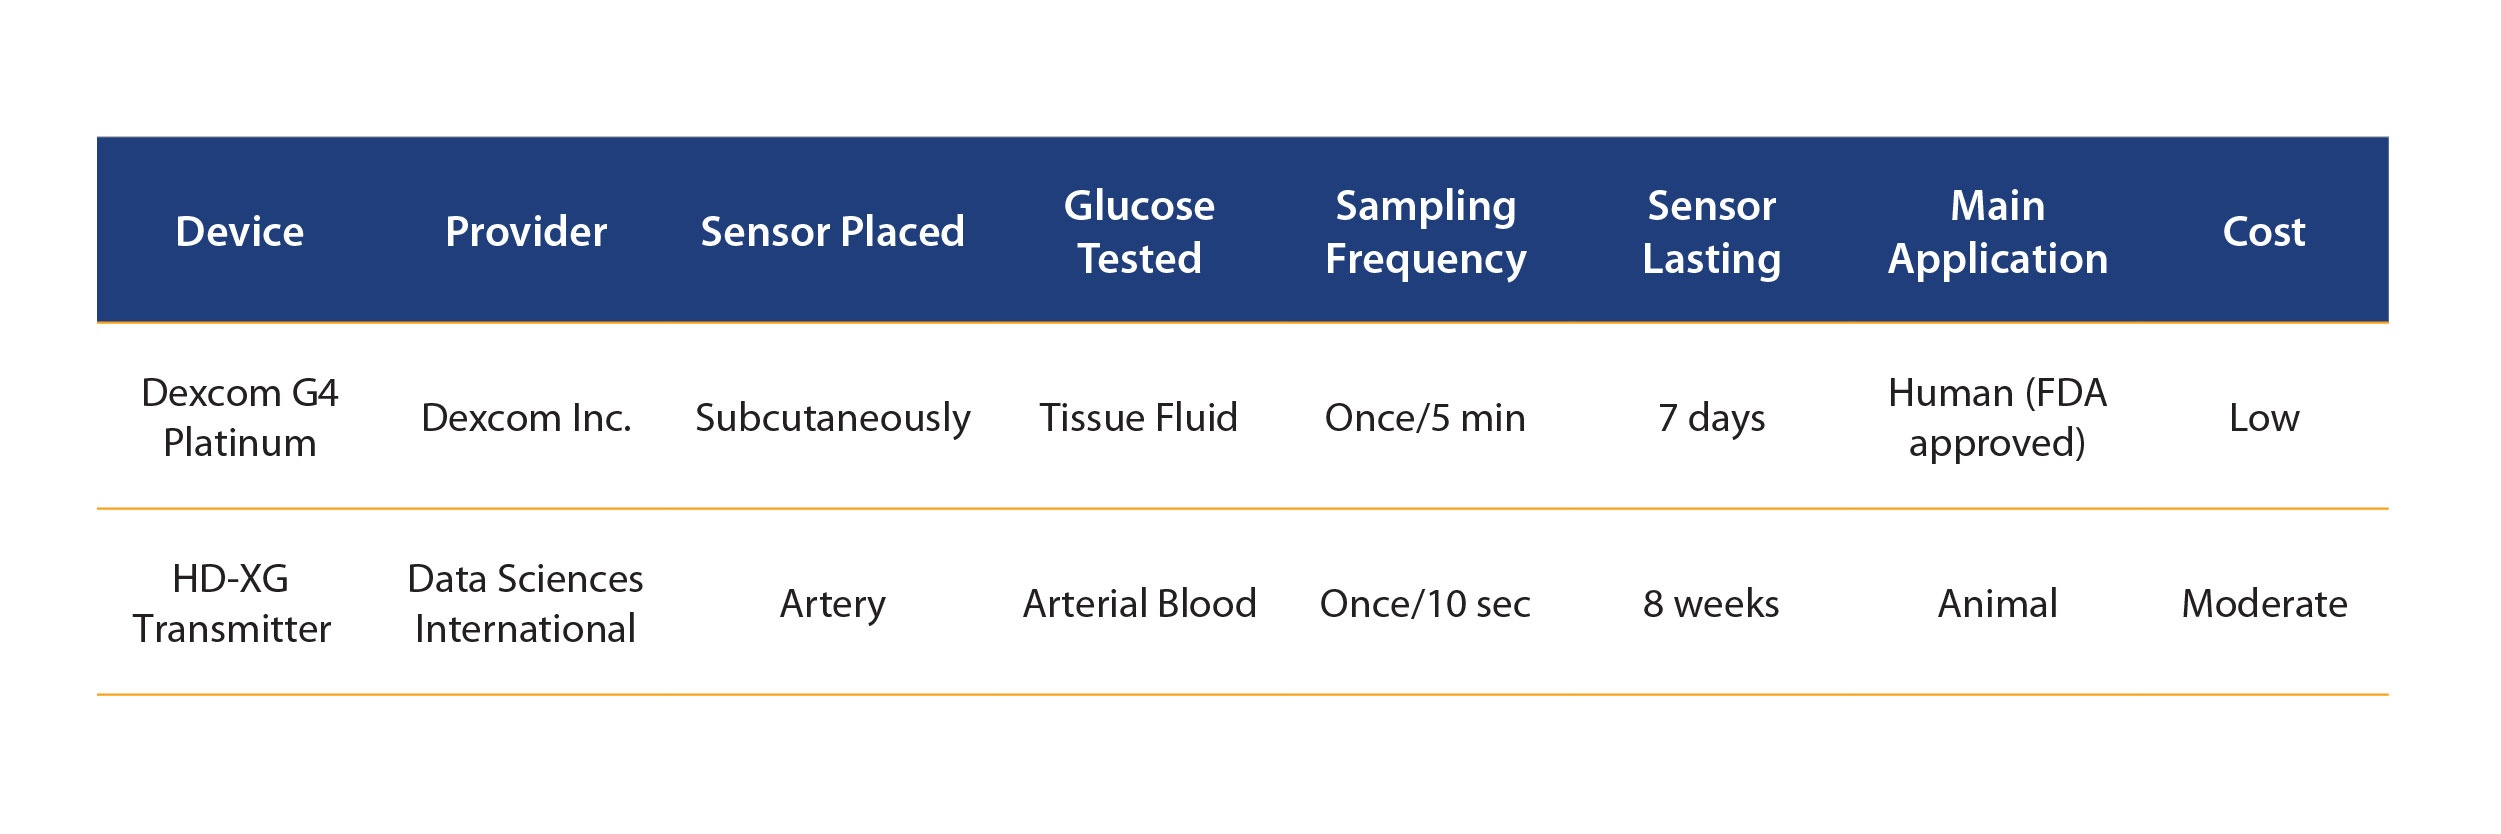 First Type 2 Diabetes Publication Comparing Pros And Cons